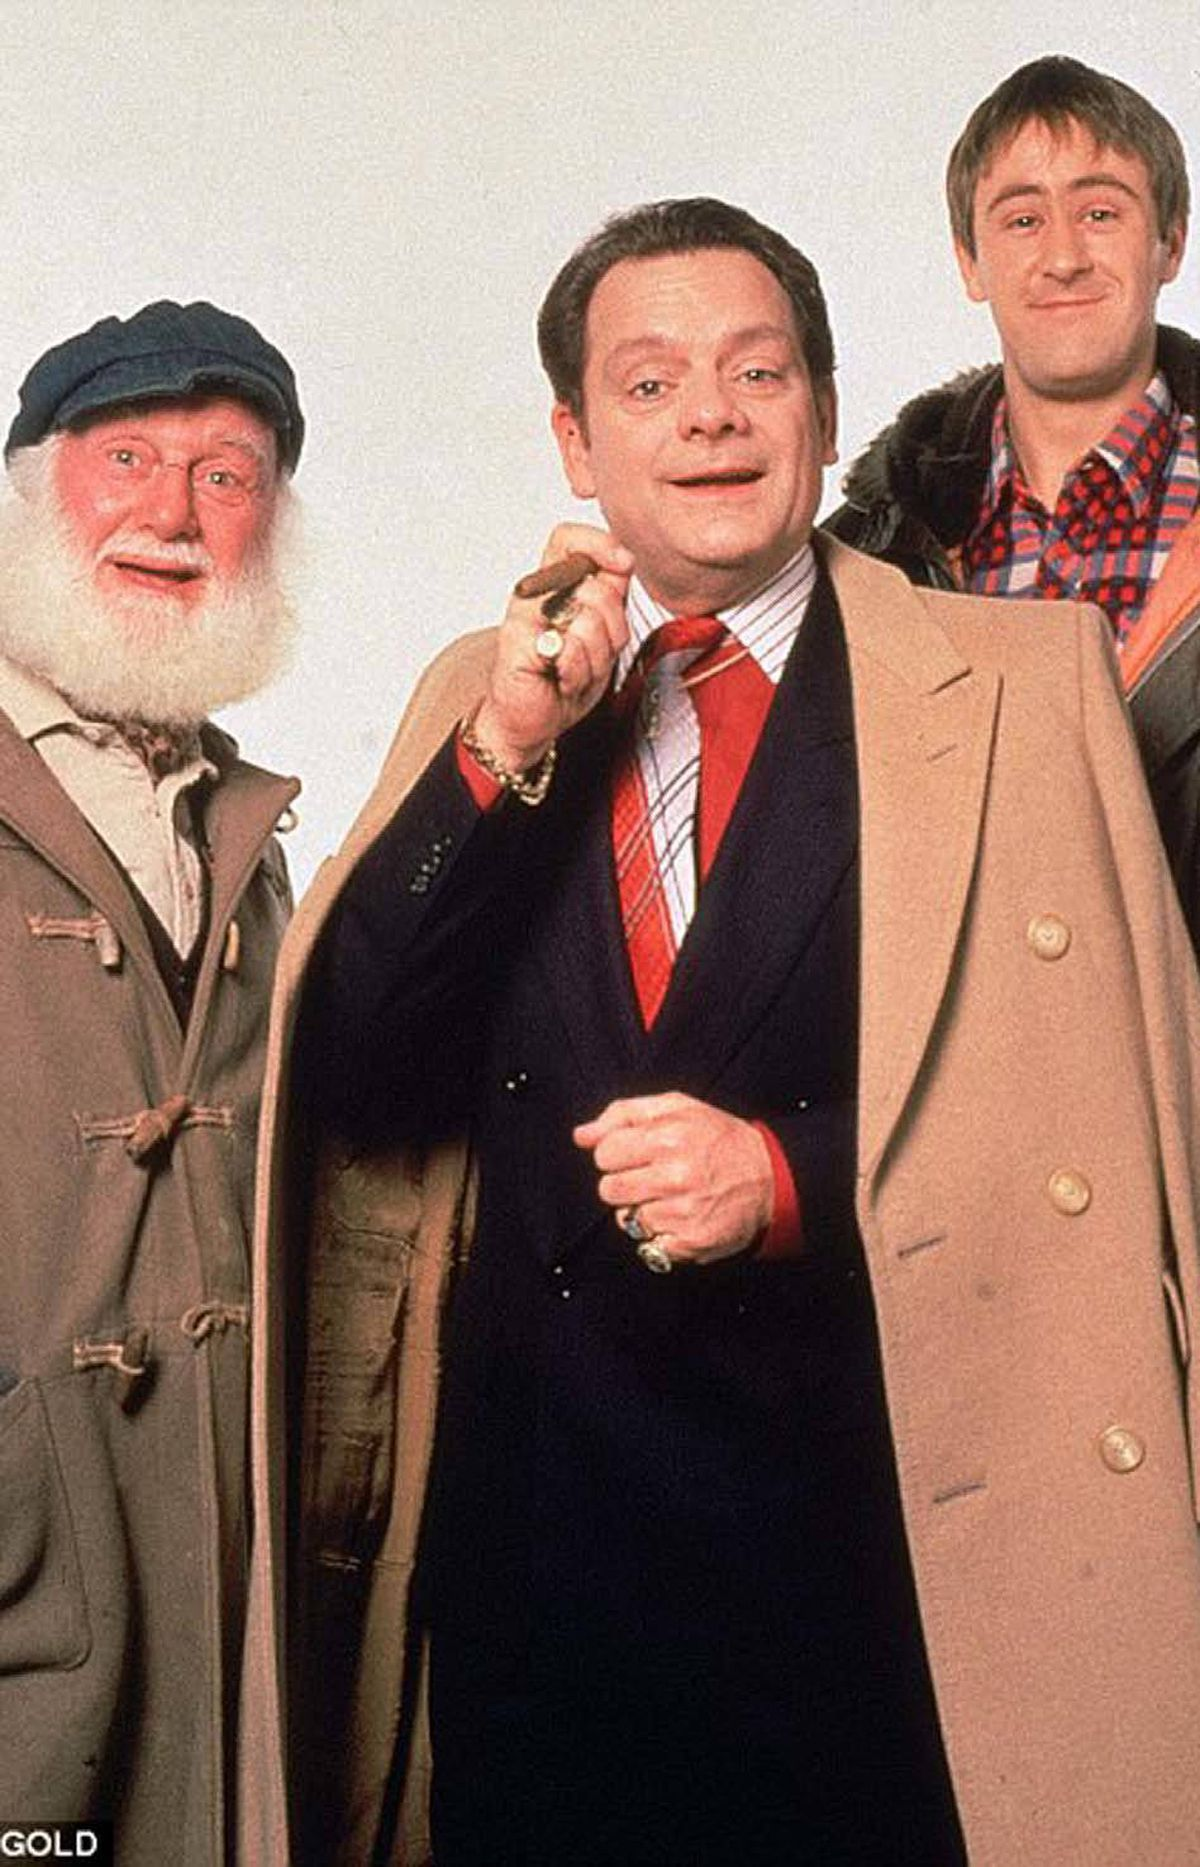 COMEDY Only Fools and Horses Vision, 8:30 p.m. ET/PT Treat yourself to some old-school British TV comedy. First broadcast from 1981 to 1991, this BBC sitcom rides entirely on the performance of David Jason, perhaps better known to viewers as Detective Jack on the crime drama A Touch of Frost. On this show, Jason is the marvellous rapscallion Derek (Del Boy) Trotter, an ambitious market trader forever on the lookout for the big payday. In most episodes, his efforts are waylaid by his dim brother Rodney (Nicholas Lyndhurst). In tonight's third-season outing, Derek delves into the art-dealing world and falls for a lovely woman named Miranda – unaware that she's an undercover detective. Watch your back, mate.